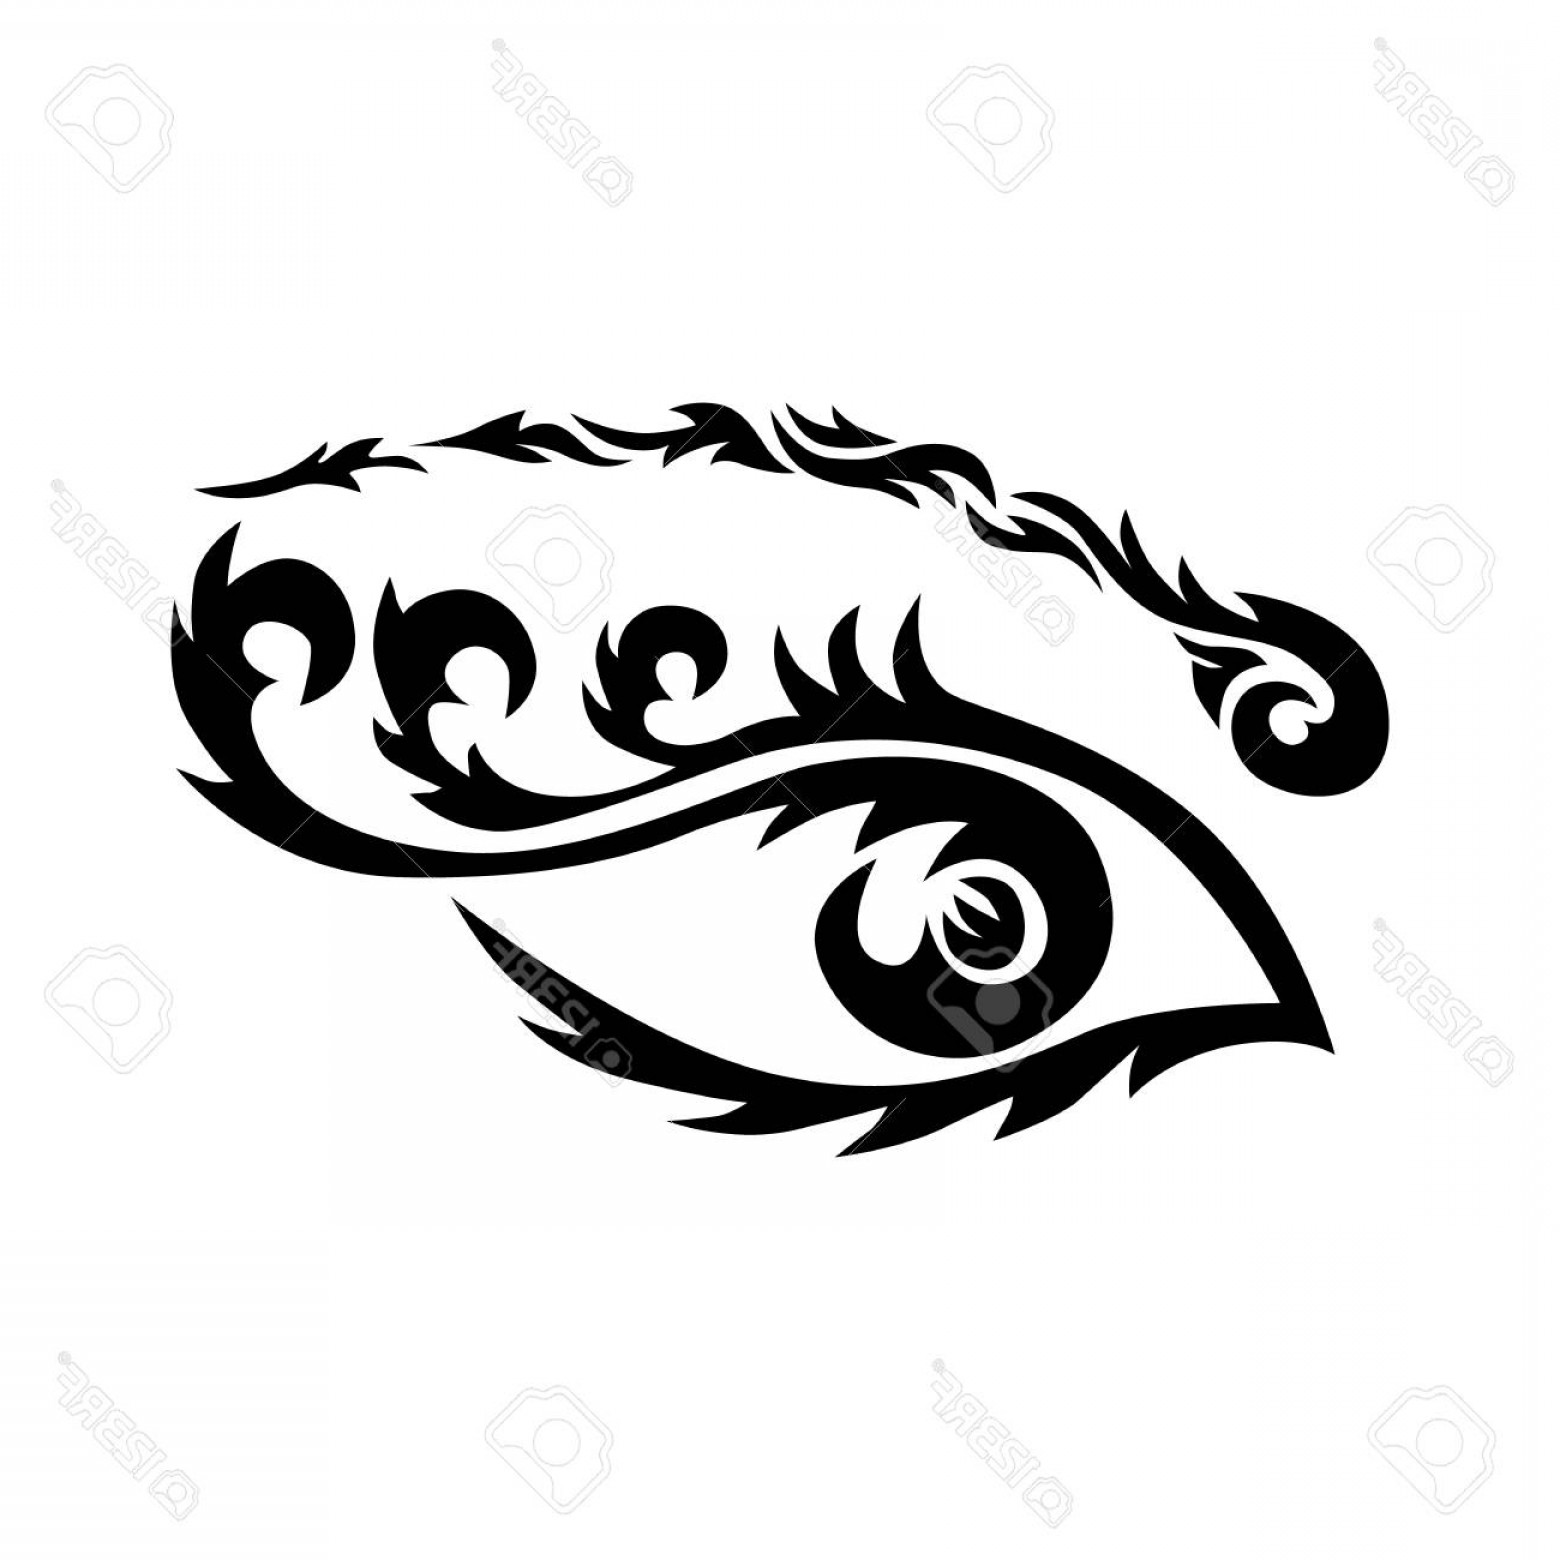 Eye Tatoo Vector: Photostock Vector Eye Tattoo Maori Tribal Tattoo In Polynesian Style Celtic Ornament In Traditional Medieval Style For